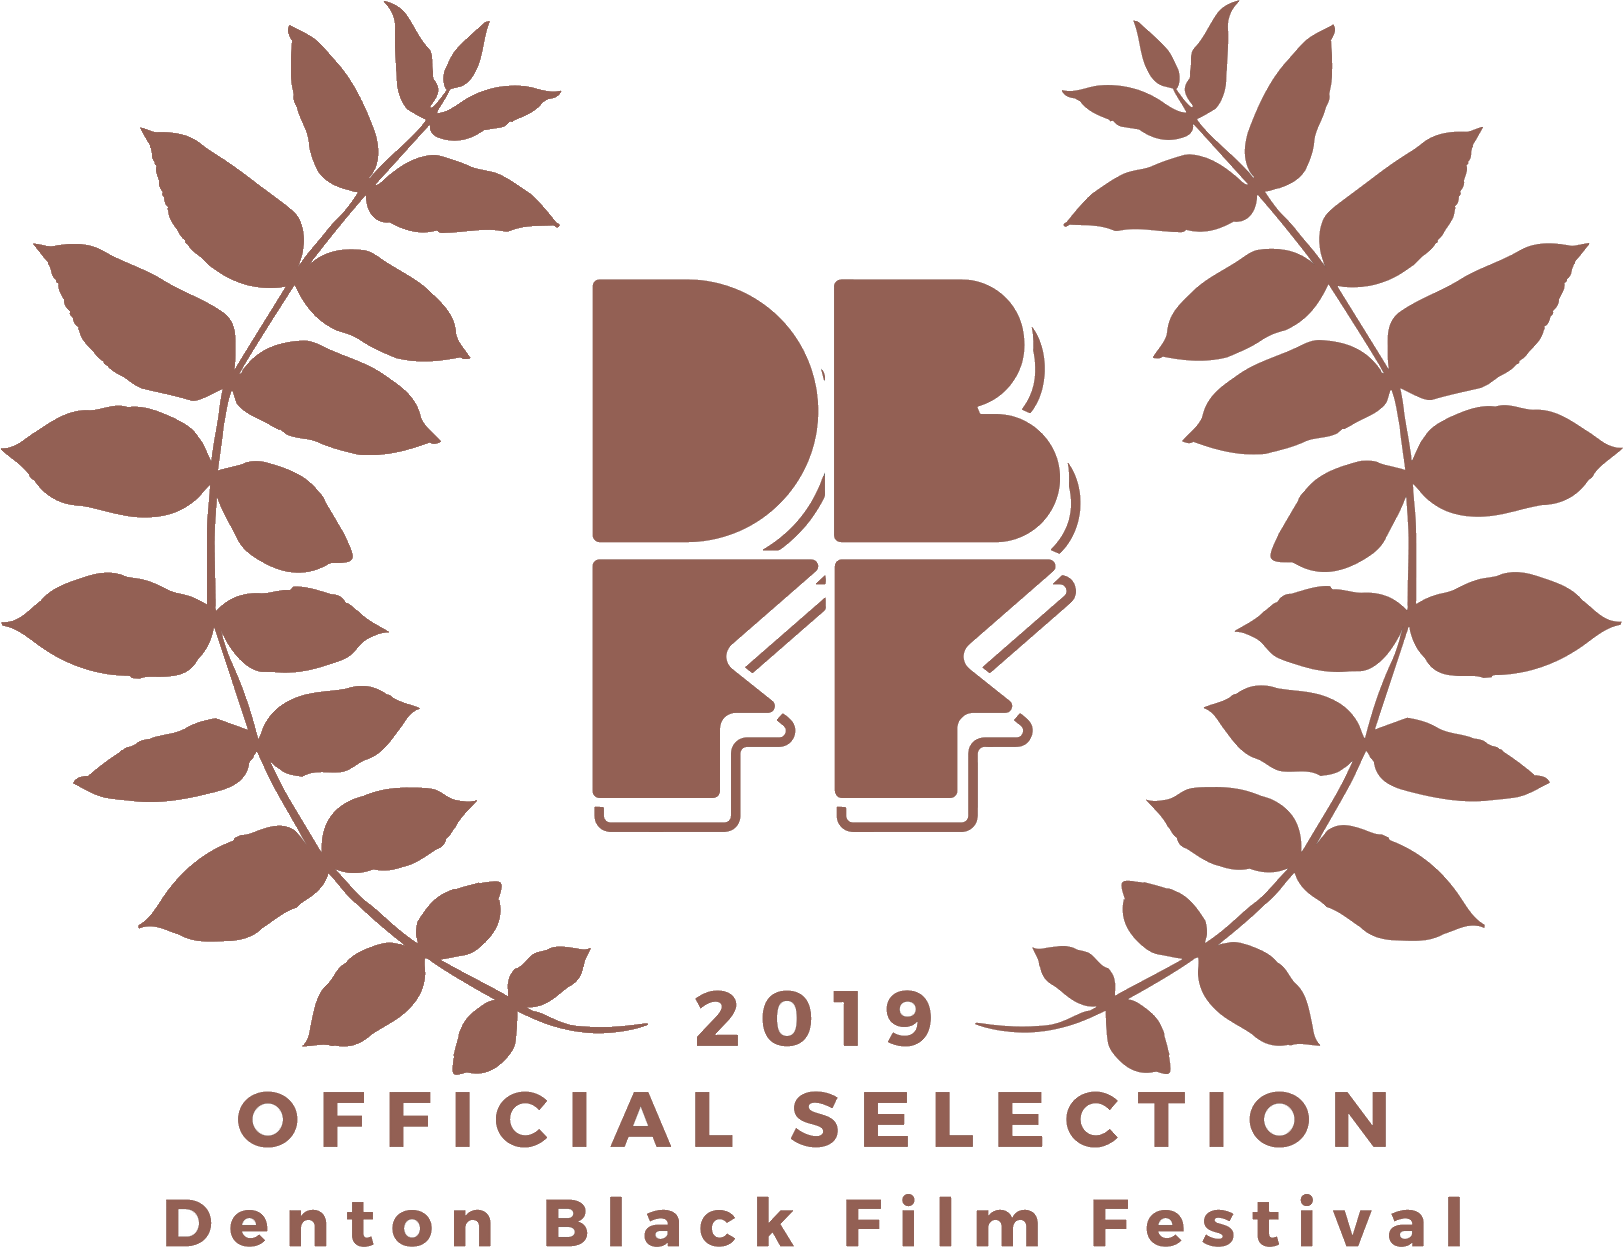 DBFF_OfficialSelection2019_Black[61846].png